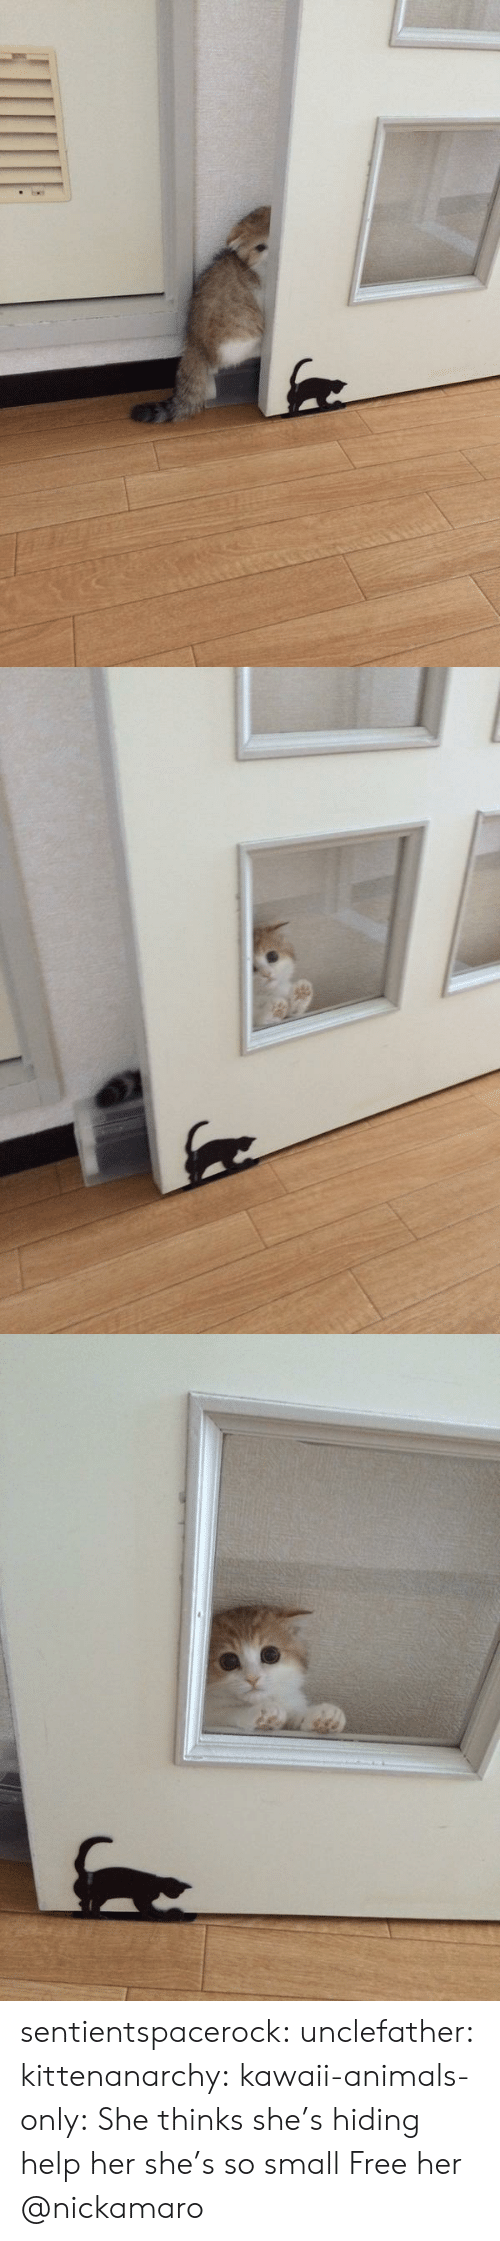 mco: sentientspacerock:  unclefather:  kittenanarchy:  kawaii-animals-only:  She thinks she's hiding  help her she's so small   Free her   @nickamaro